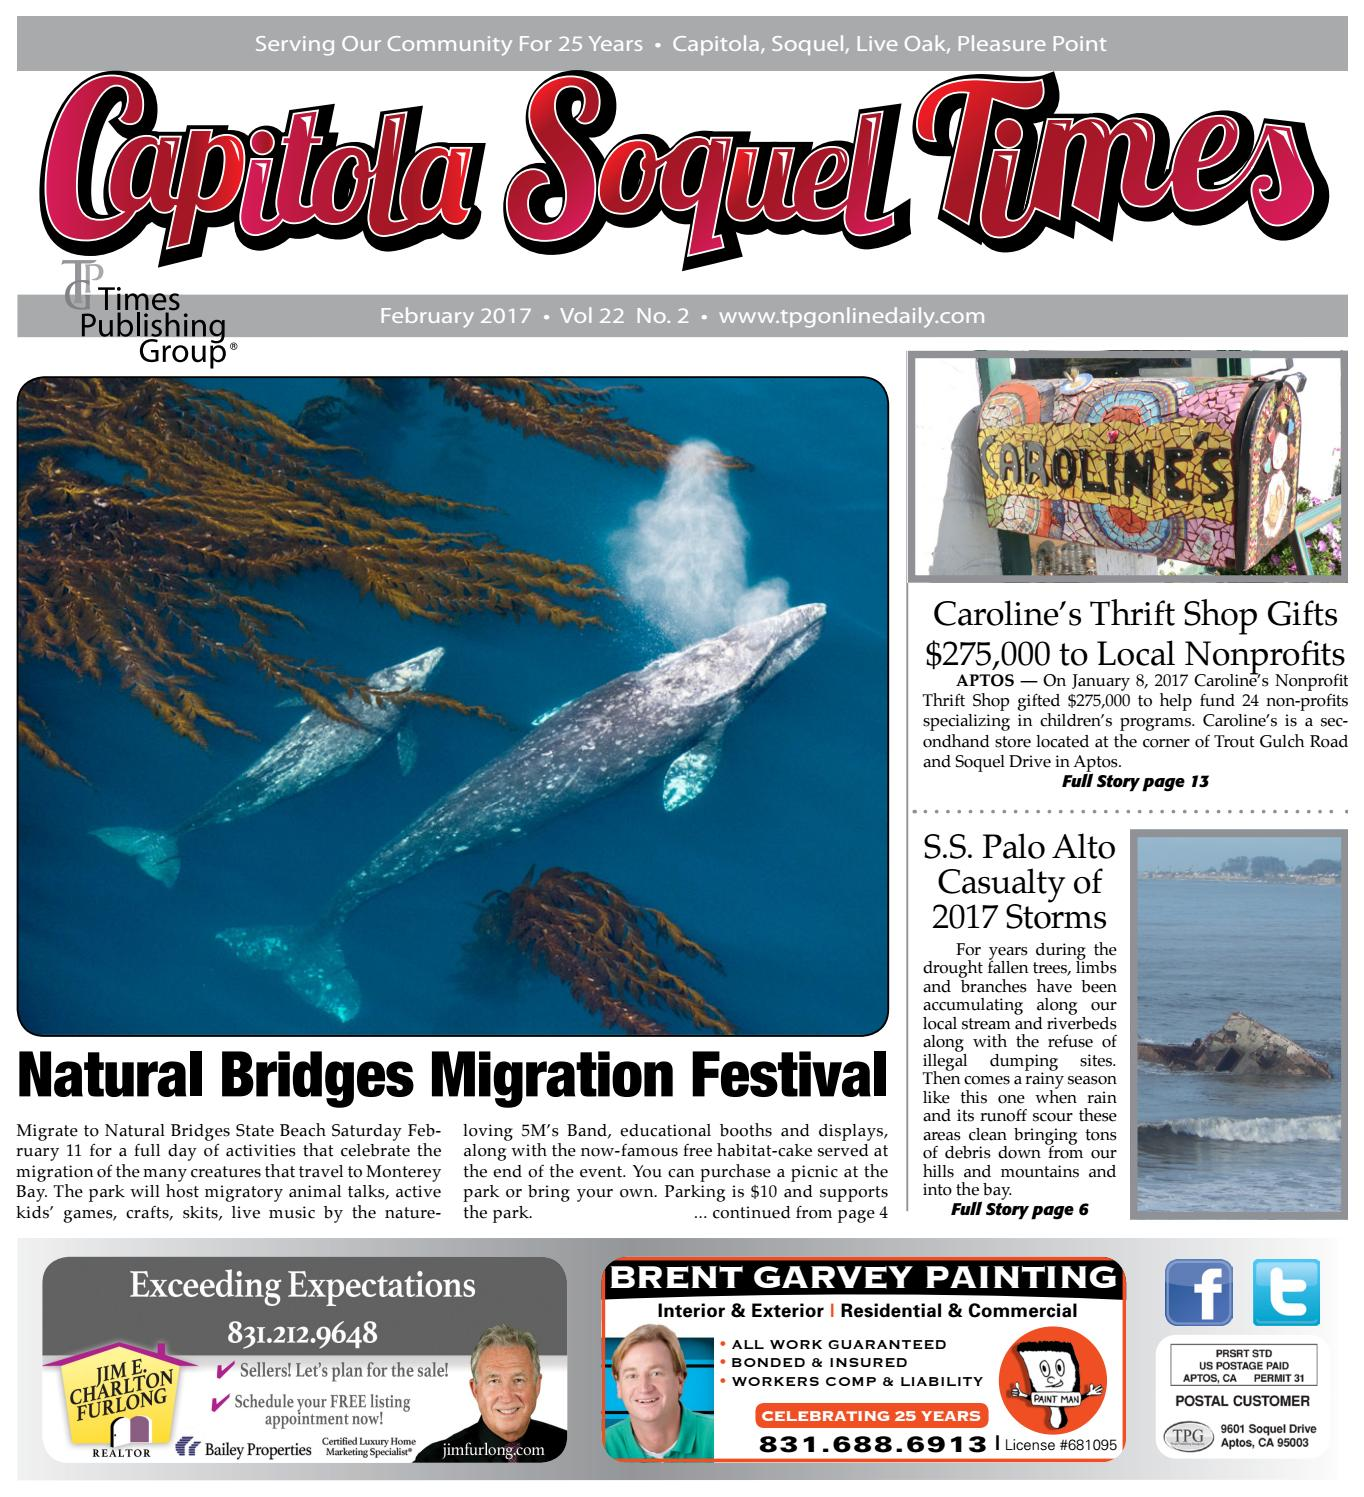 Capitola Soquel Times: February 2017 by Times Publishing